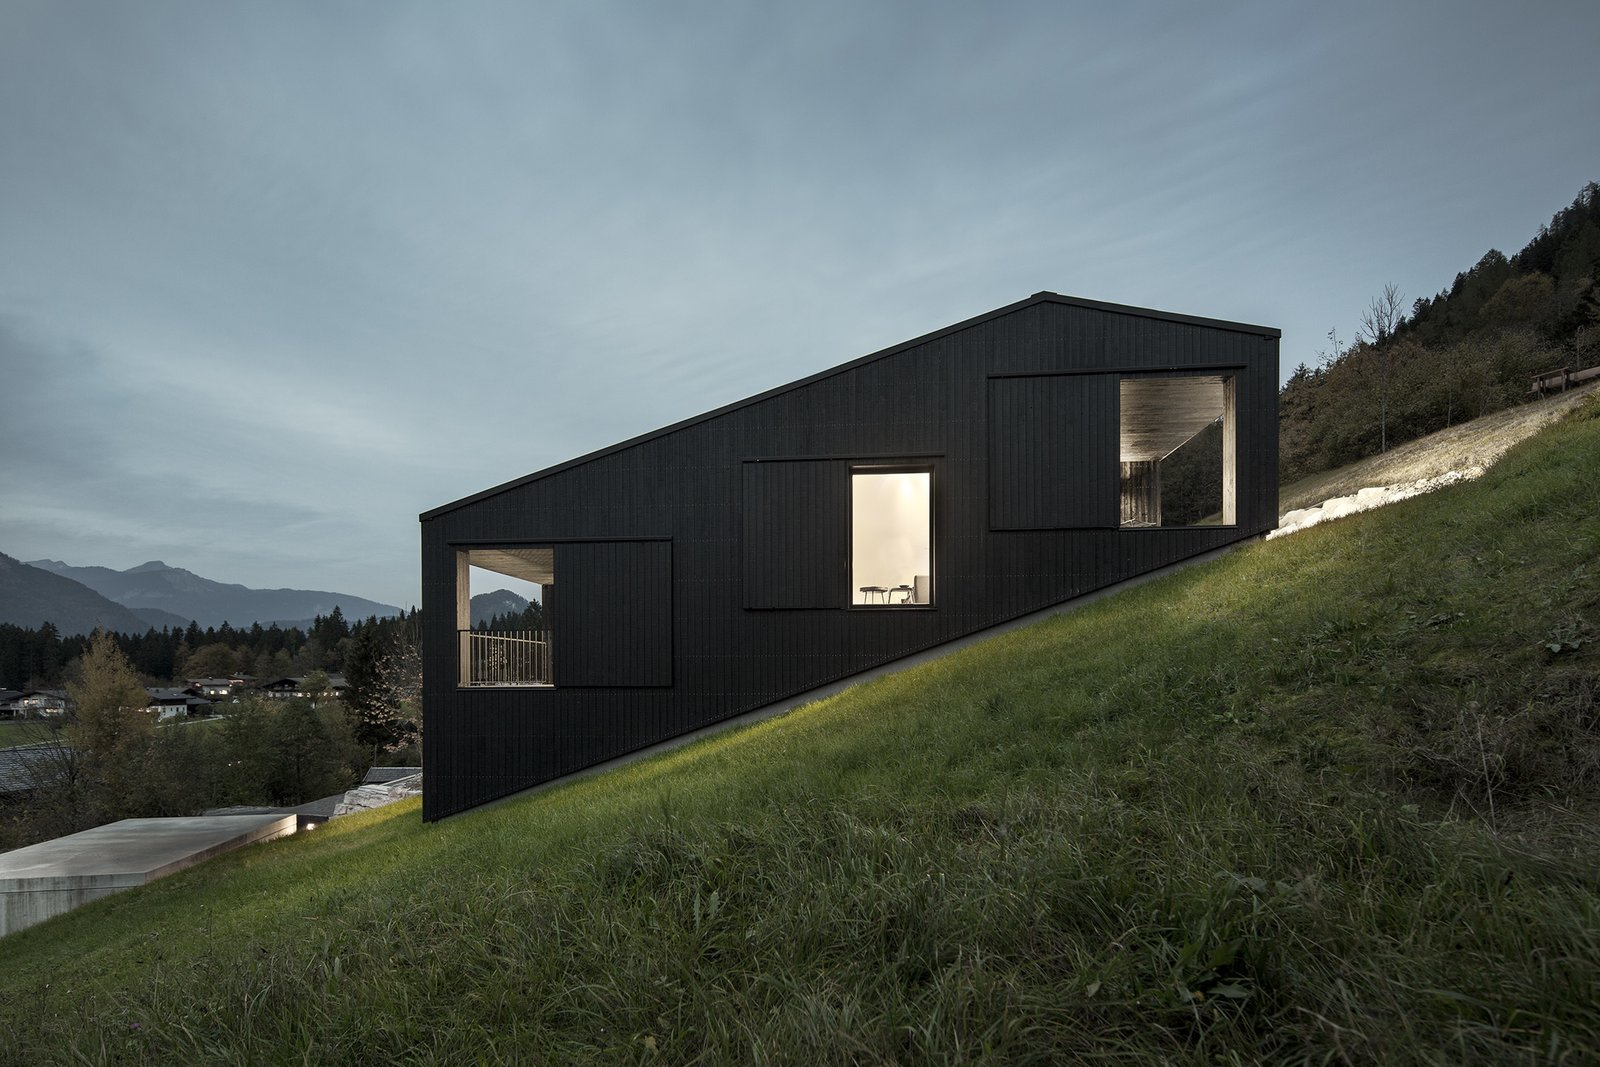 Context and Contrast in the Alps | Austria  An Austrian vacation home's design references its mountainside setting and expansive views across the valley. By Tom Lechner / LP Architektur  Cabin Love by Sandra Henderson